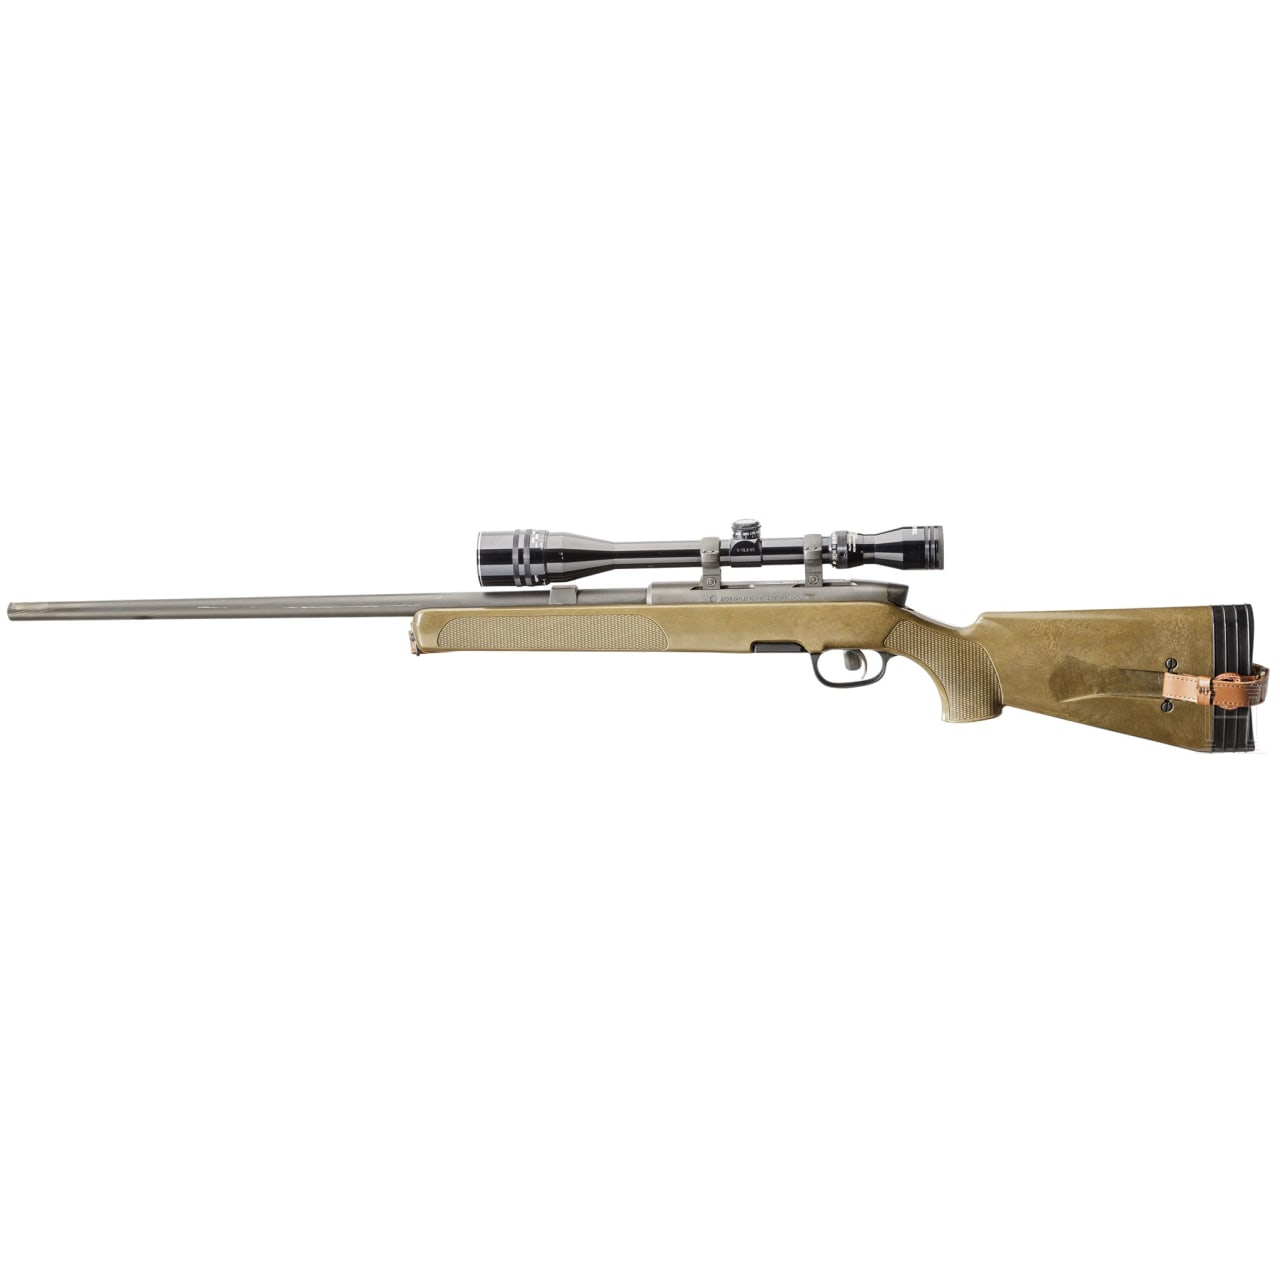 A Steyr SSG 69 sniper rifle, with Tasco scope